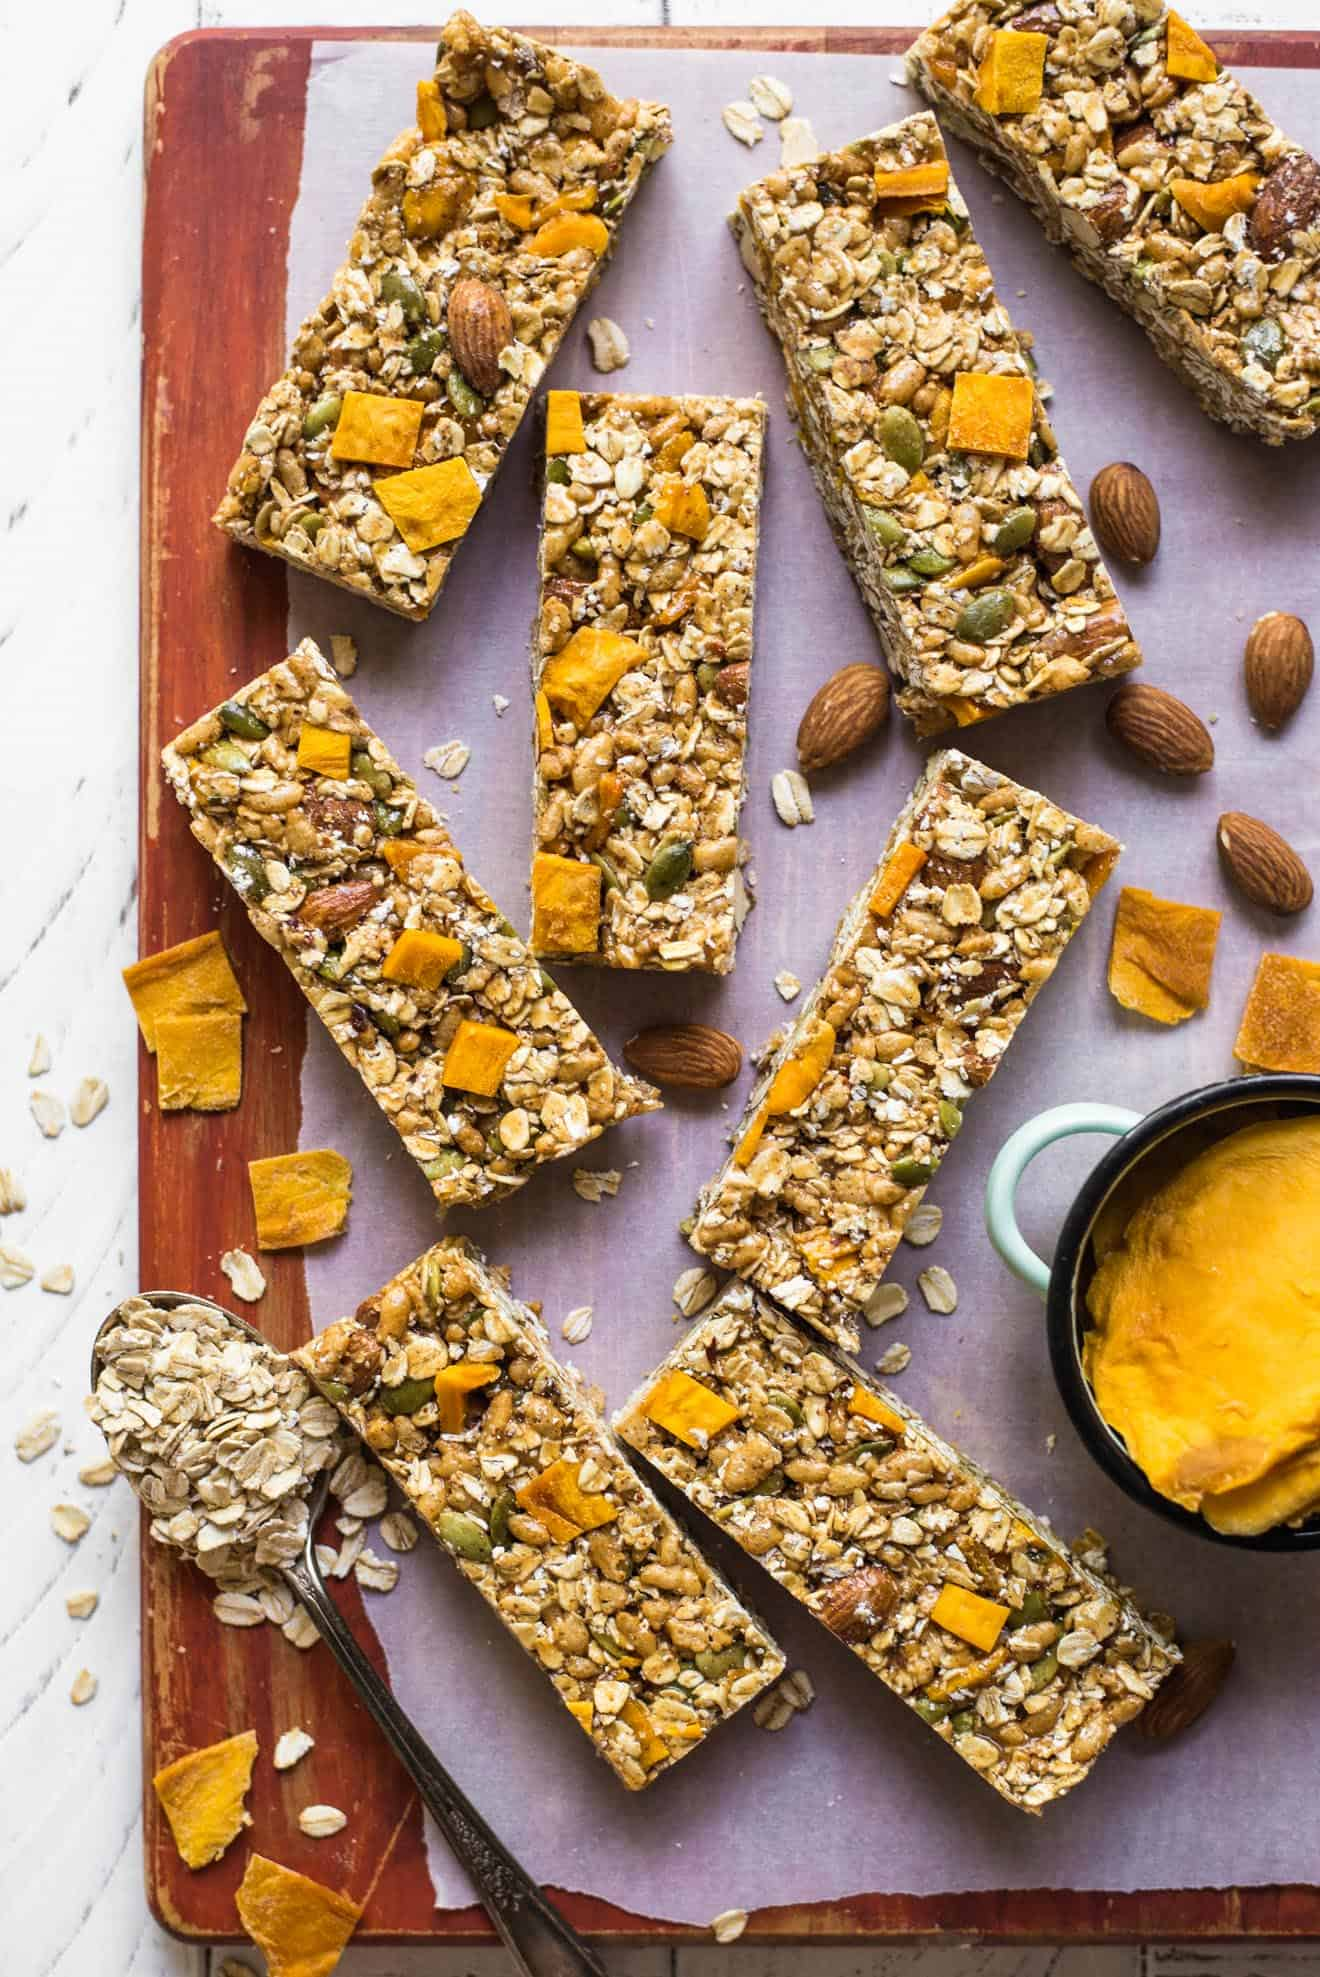 Chili Mango Snack Bars   Making Granola Bars At Home Is Much Easier Than  You Think